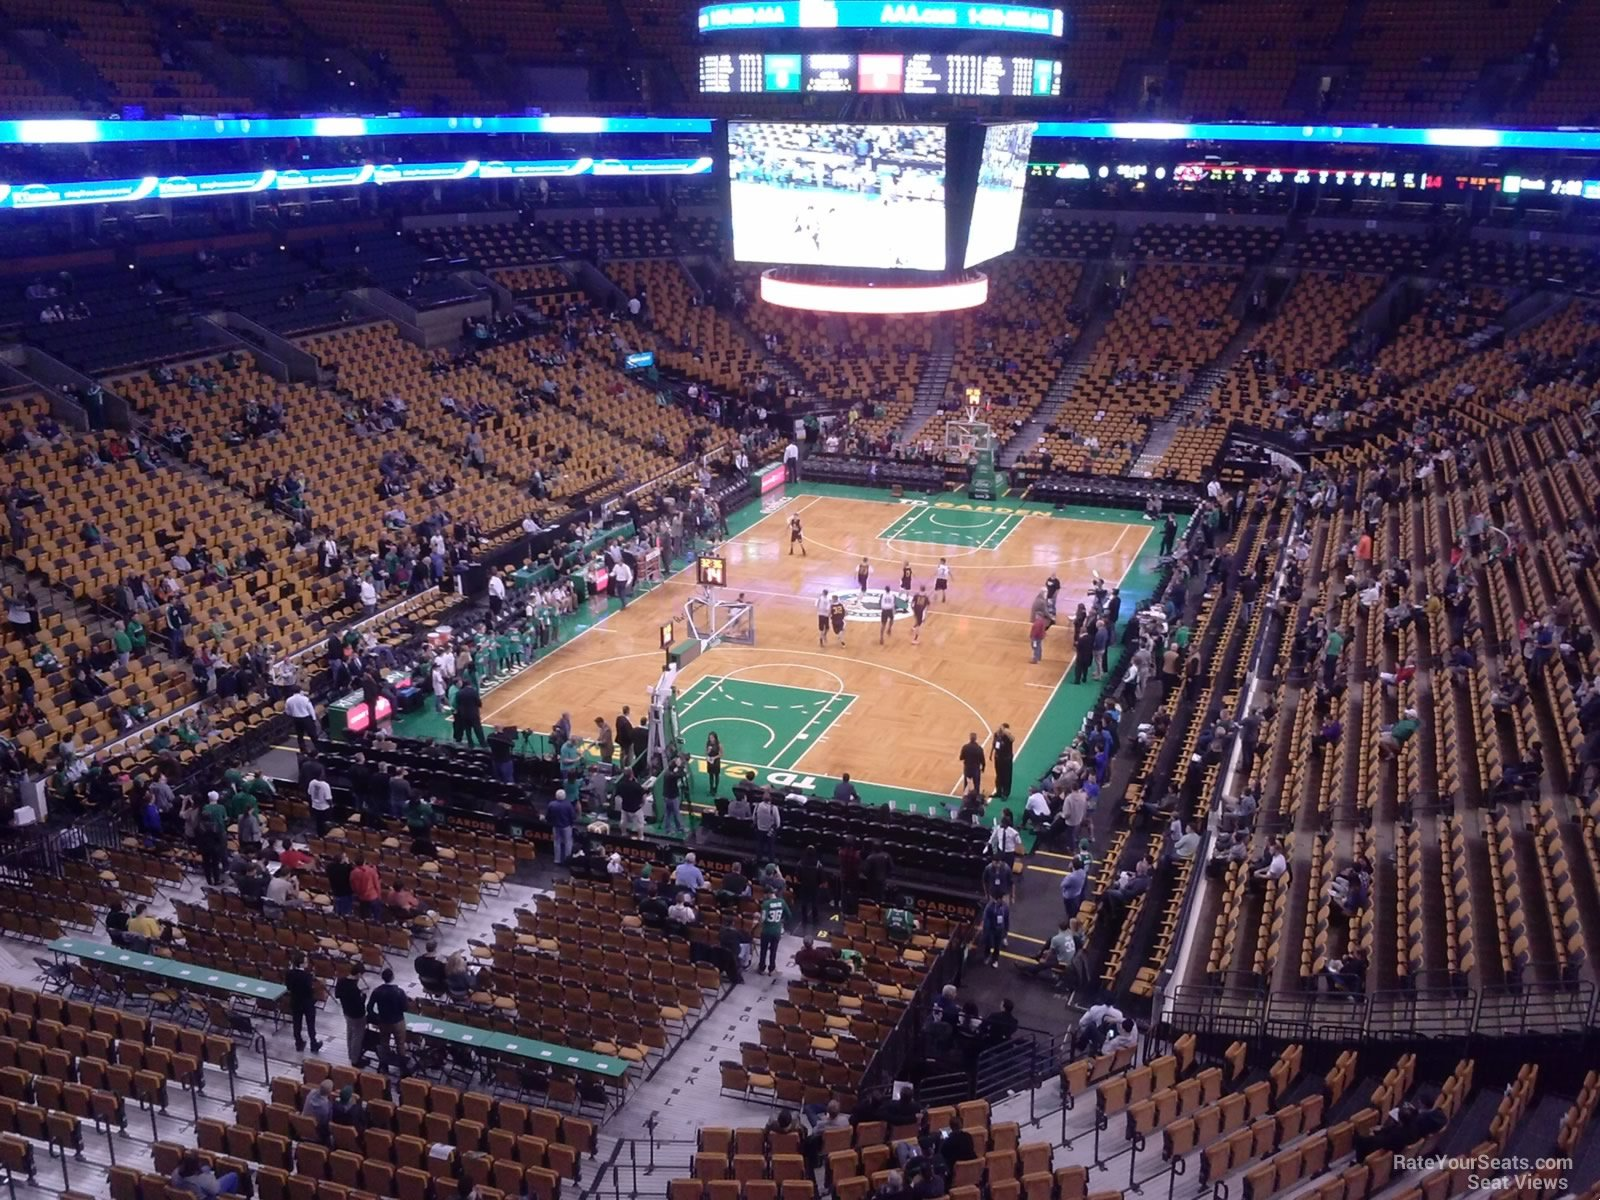 Td Garden Section 322 Boston Celtics Rateyourseats Com